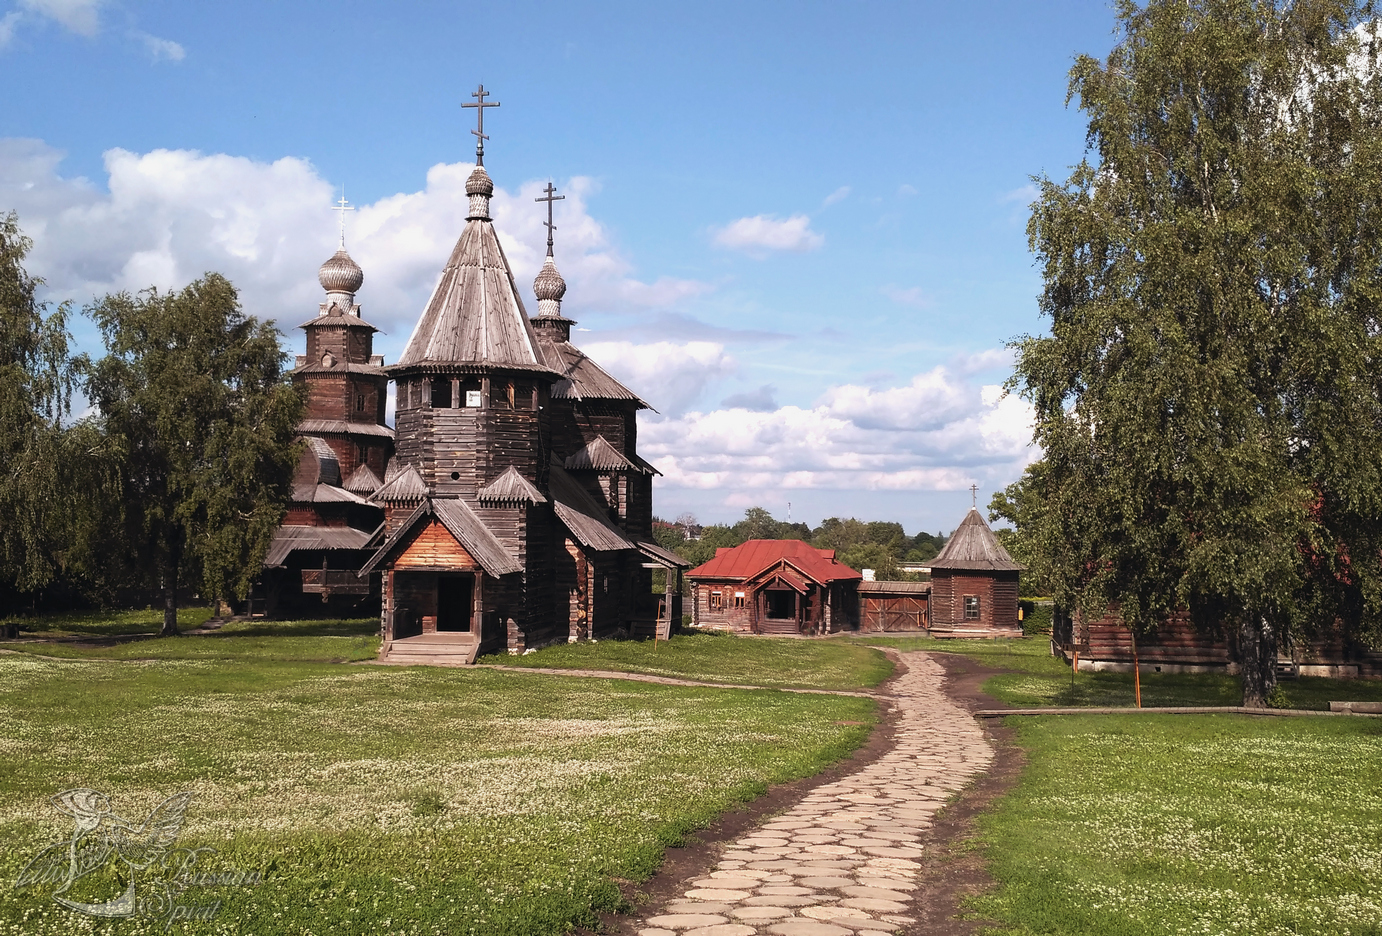 Wooden Russian Architecture museum